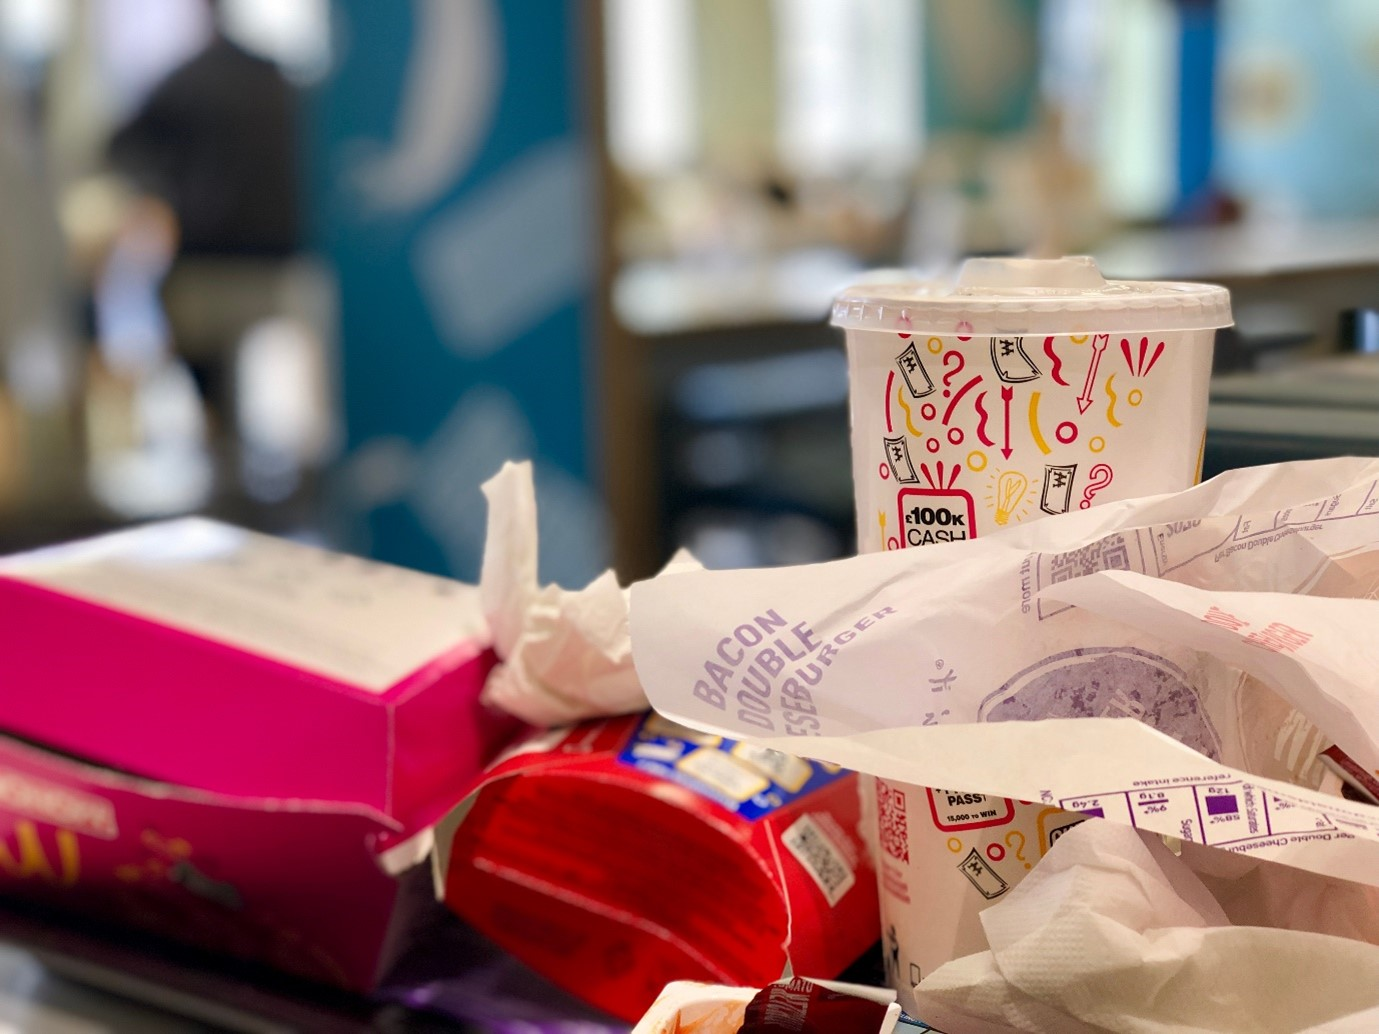 Business food waste such as Mcdonald's wrappers.